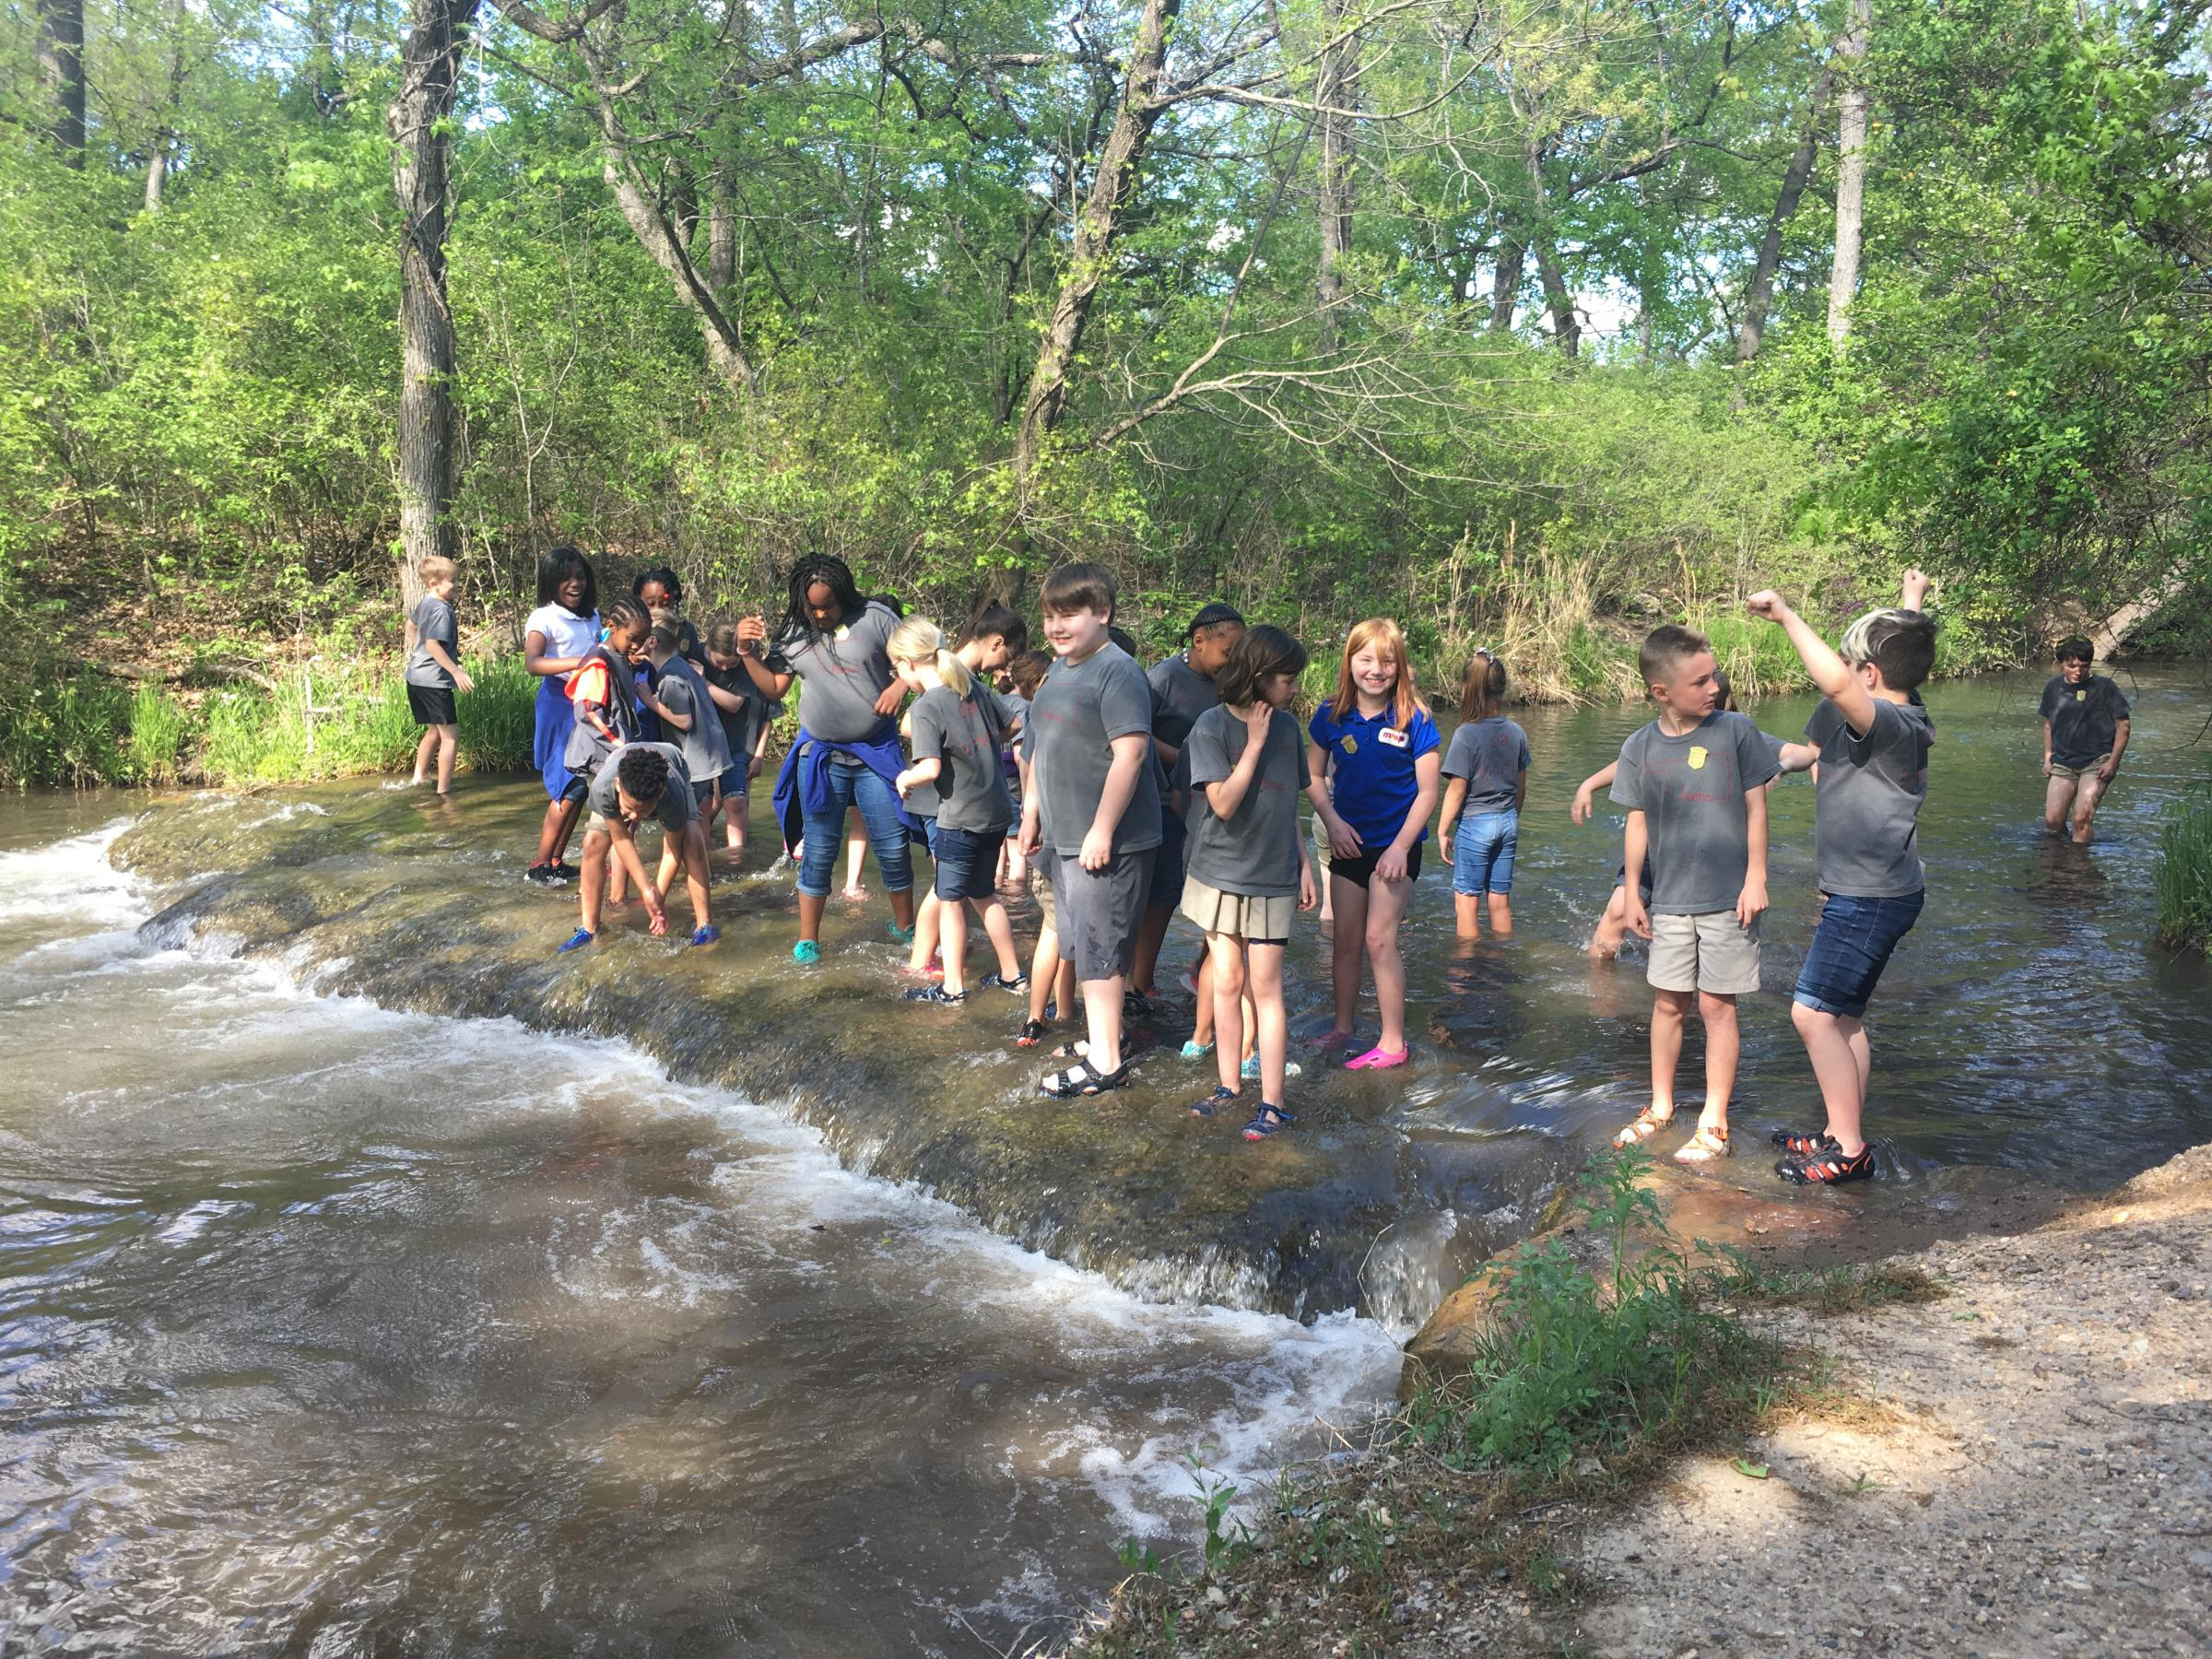 A large group of school-aged kids in gray t-shirts and shortsstanding in a wide shallow creek, smiling and laughing.